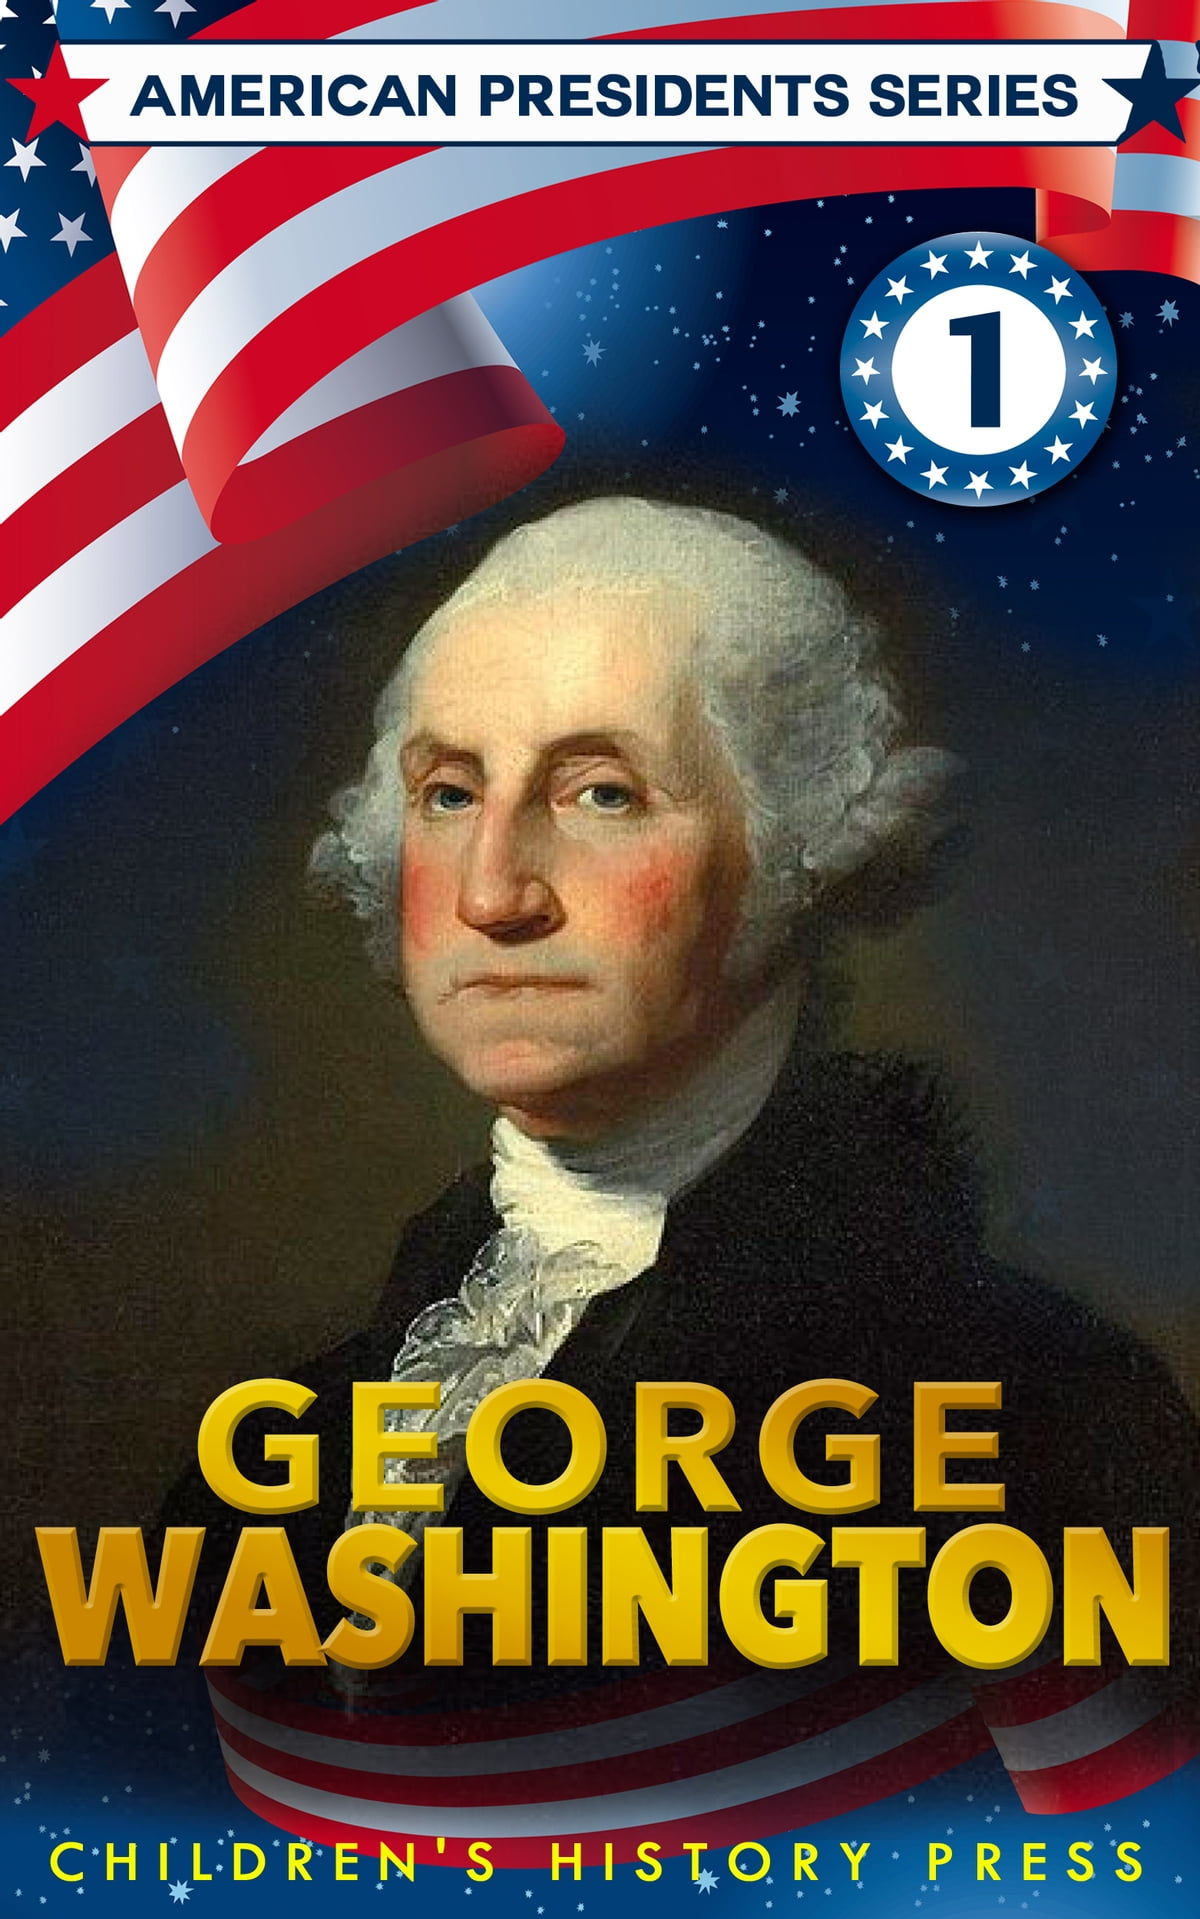 American Presidents Series George Washington For Kids Ebook By Children S History Press